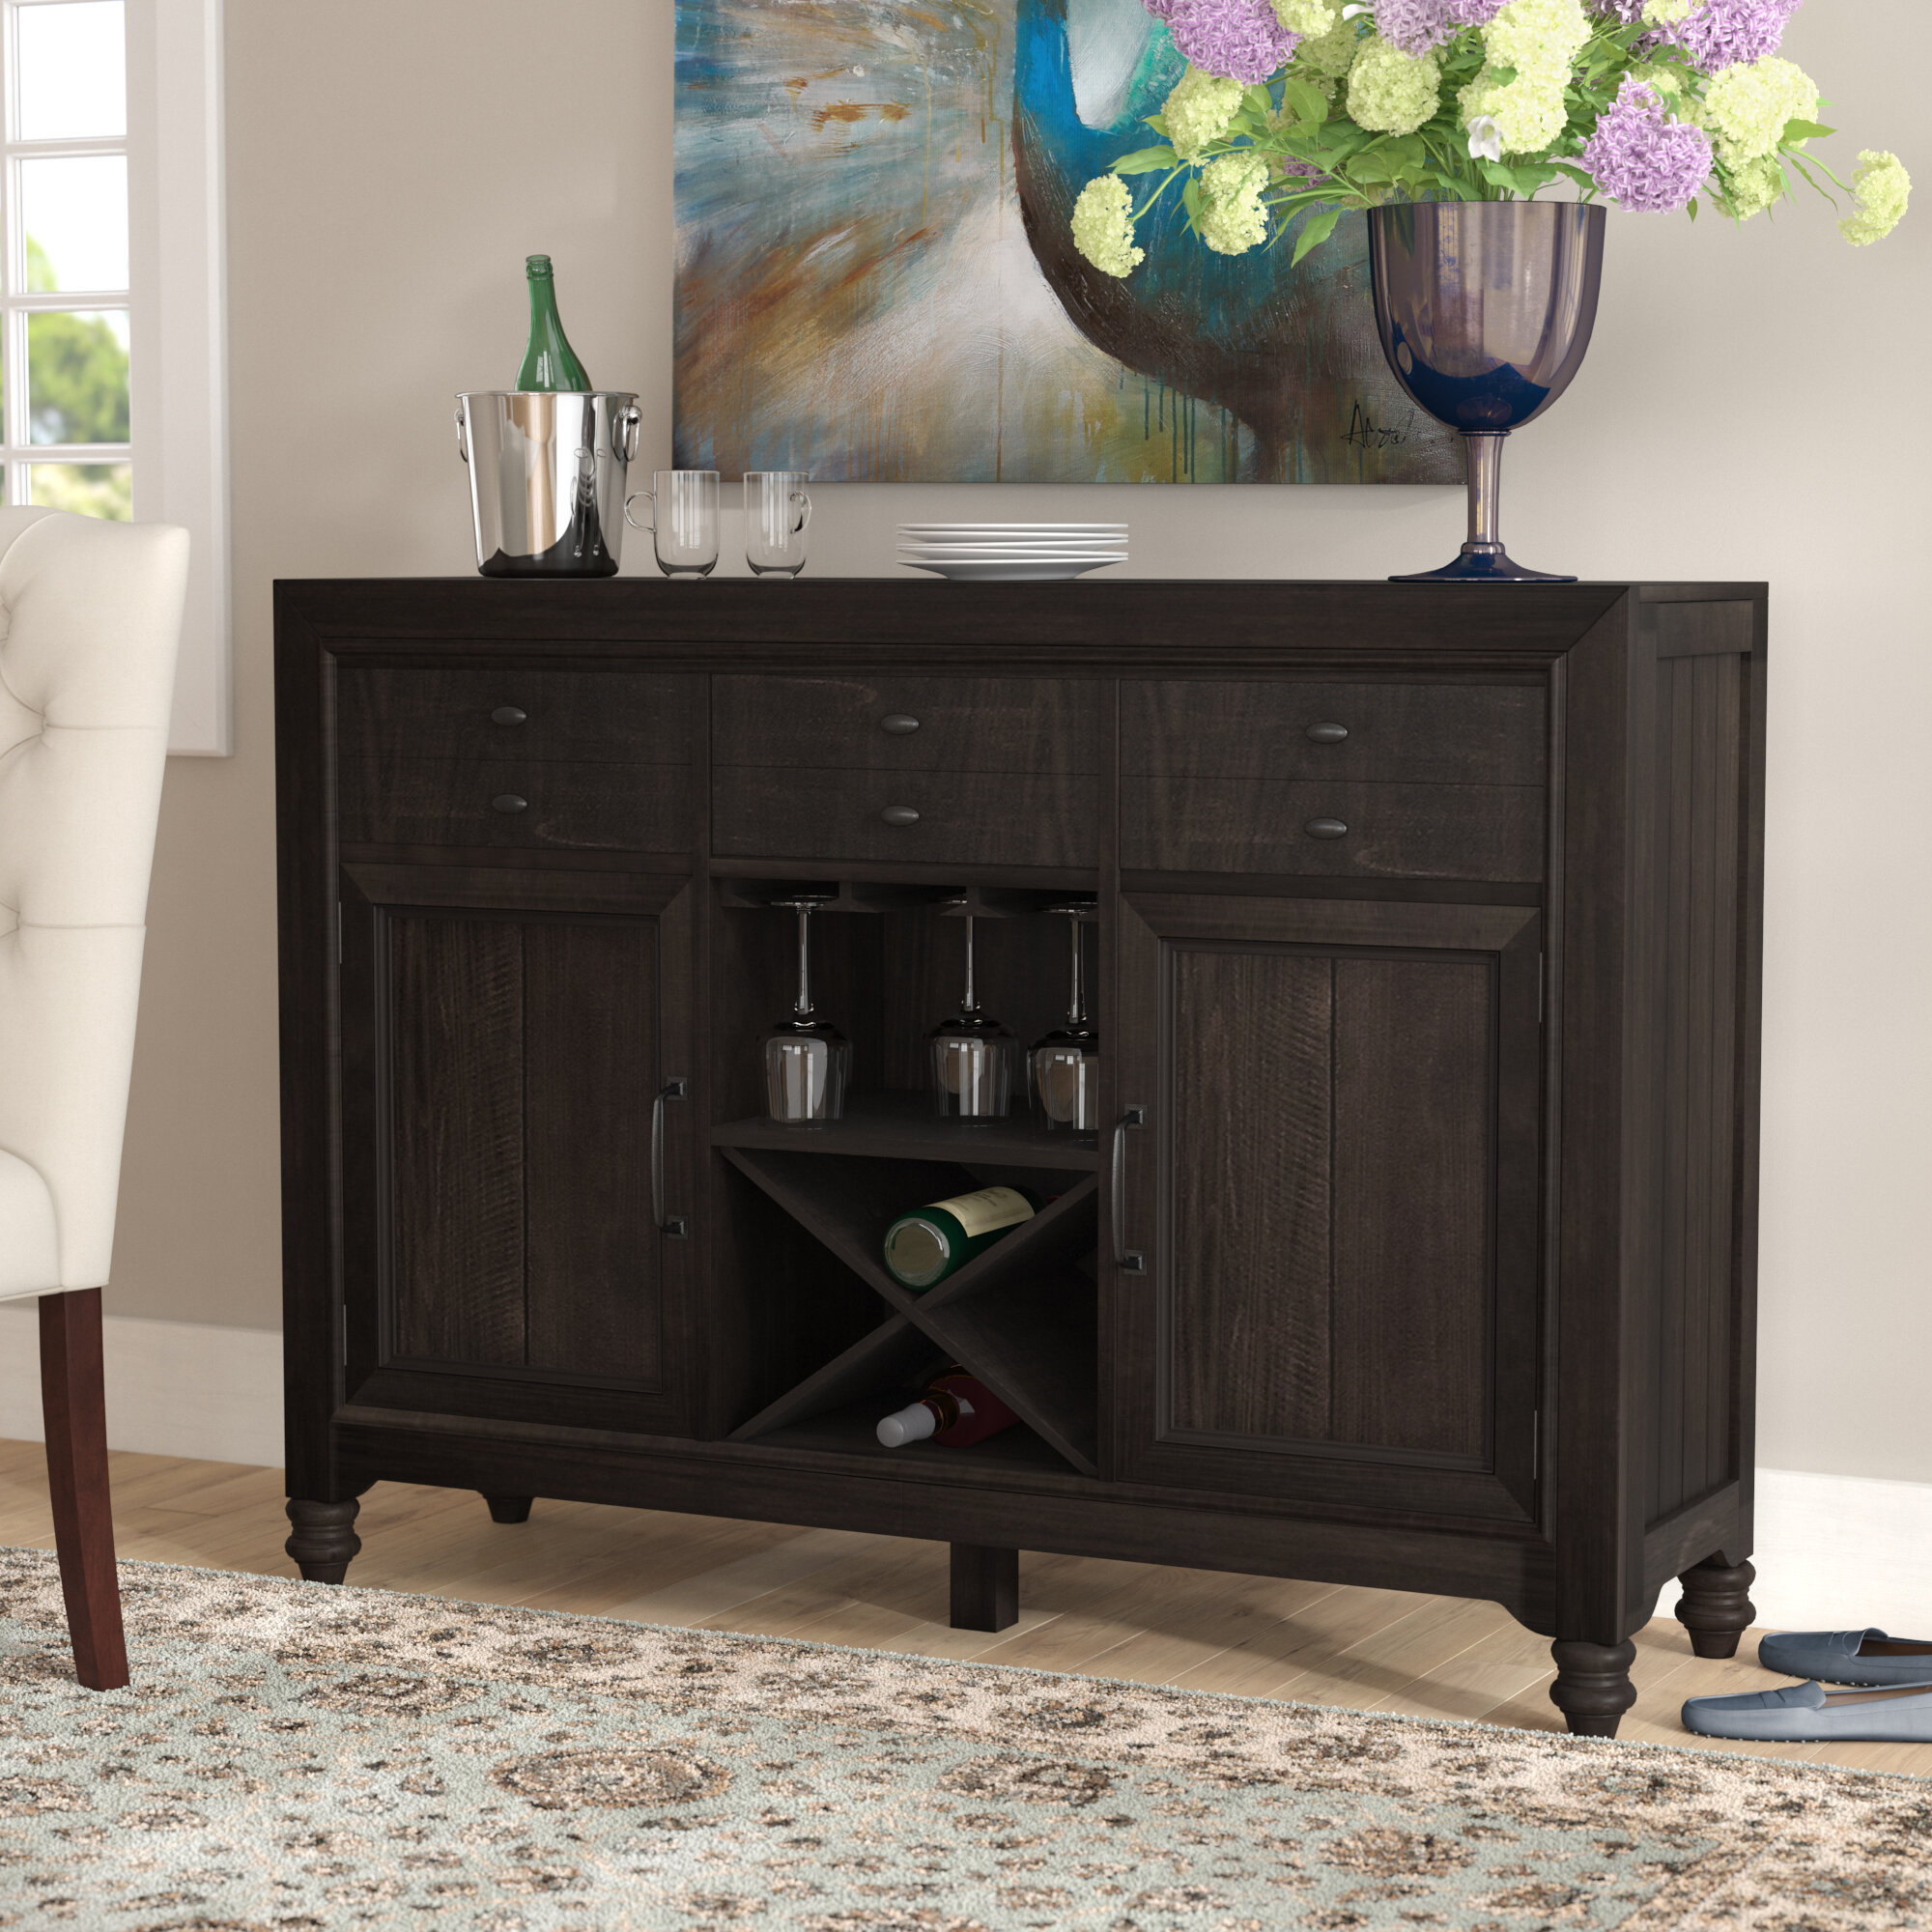 table console inflow king and global sideboard inflowcomponent content technicalissues p kings brand with cherry s wood drawers storage res